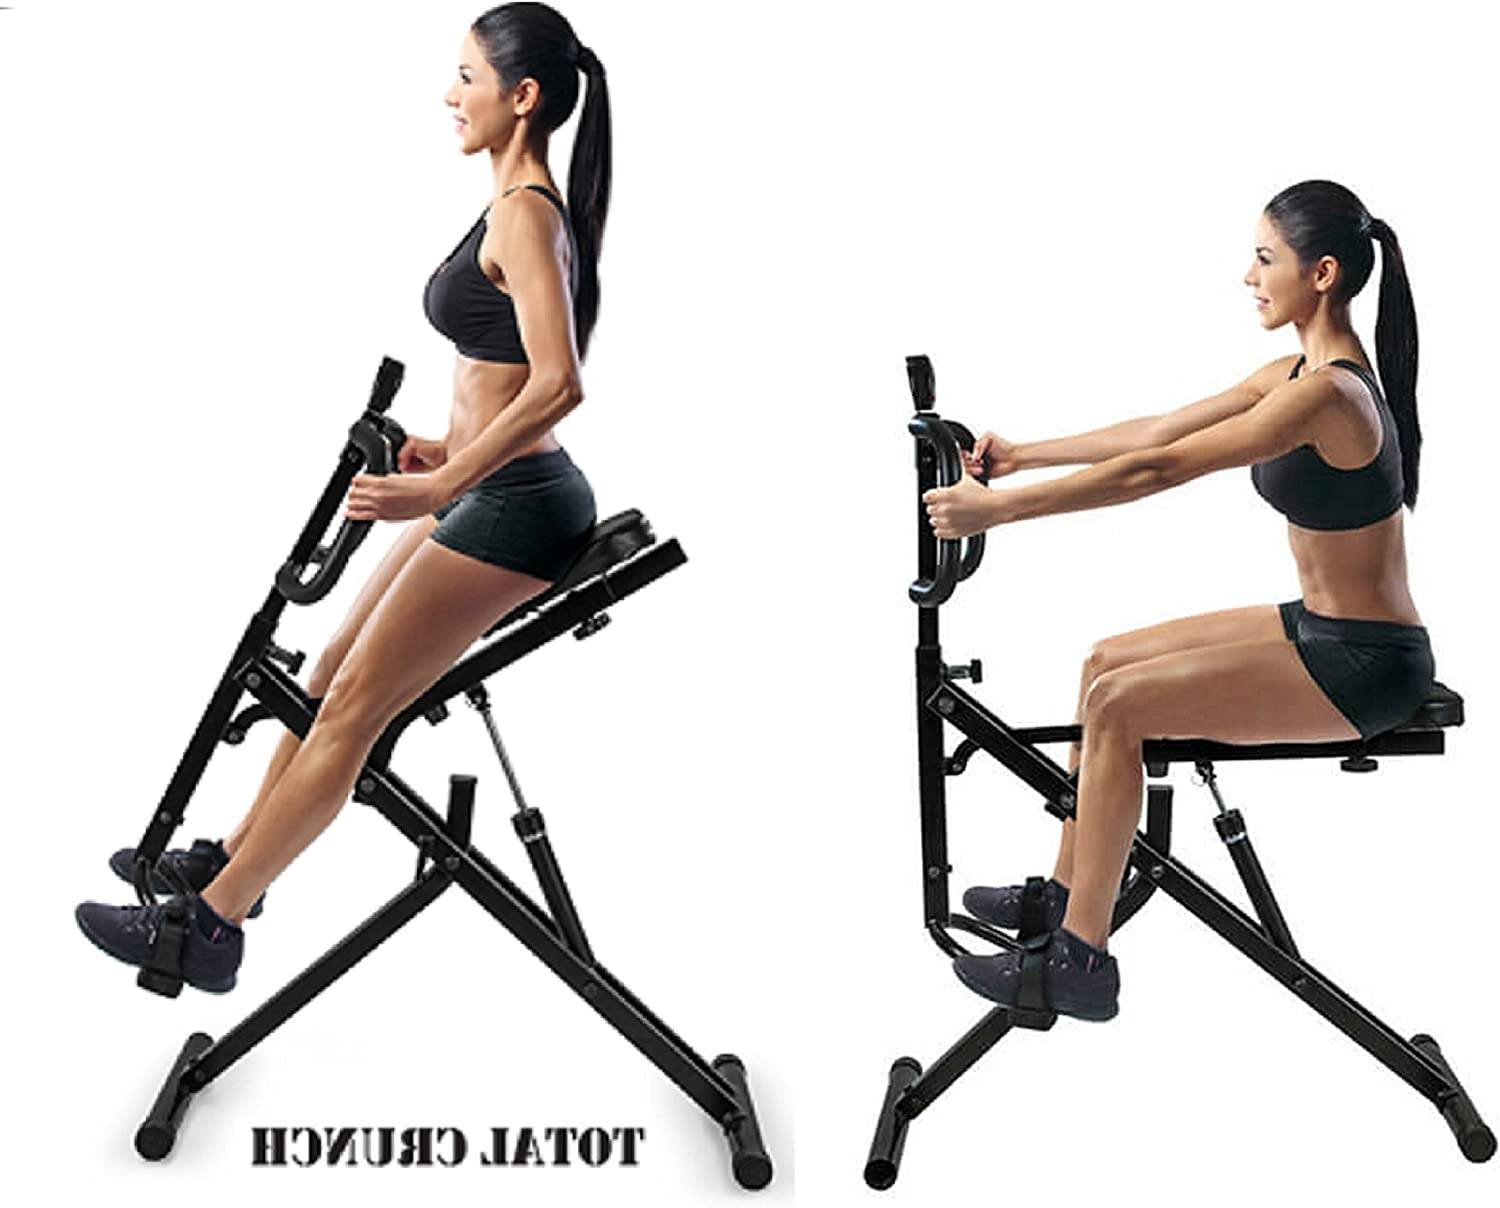 Total Crunch Power Rider Fitness Abdo Cruncher Abs Exercise Full Body Workout